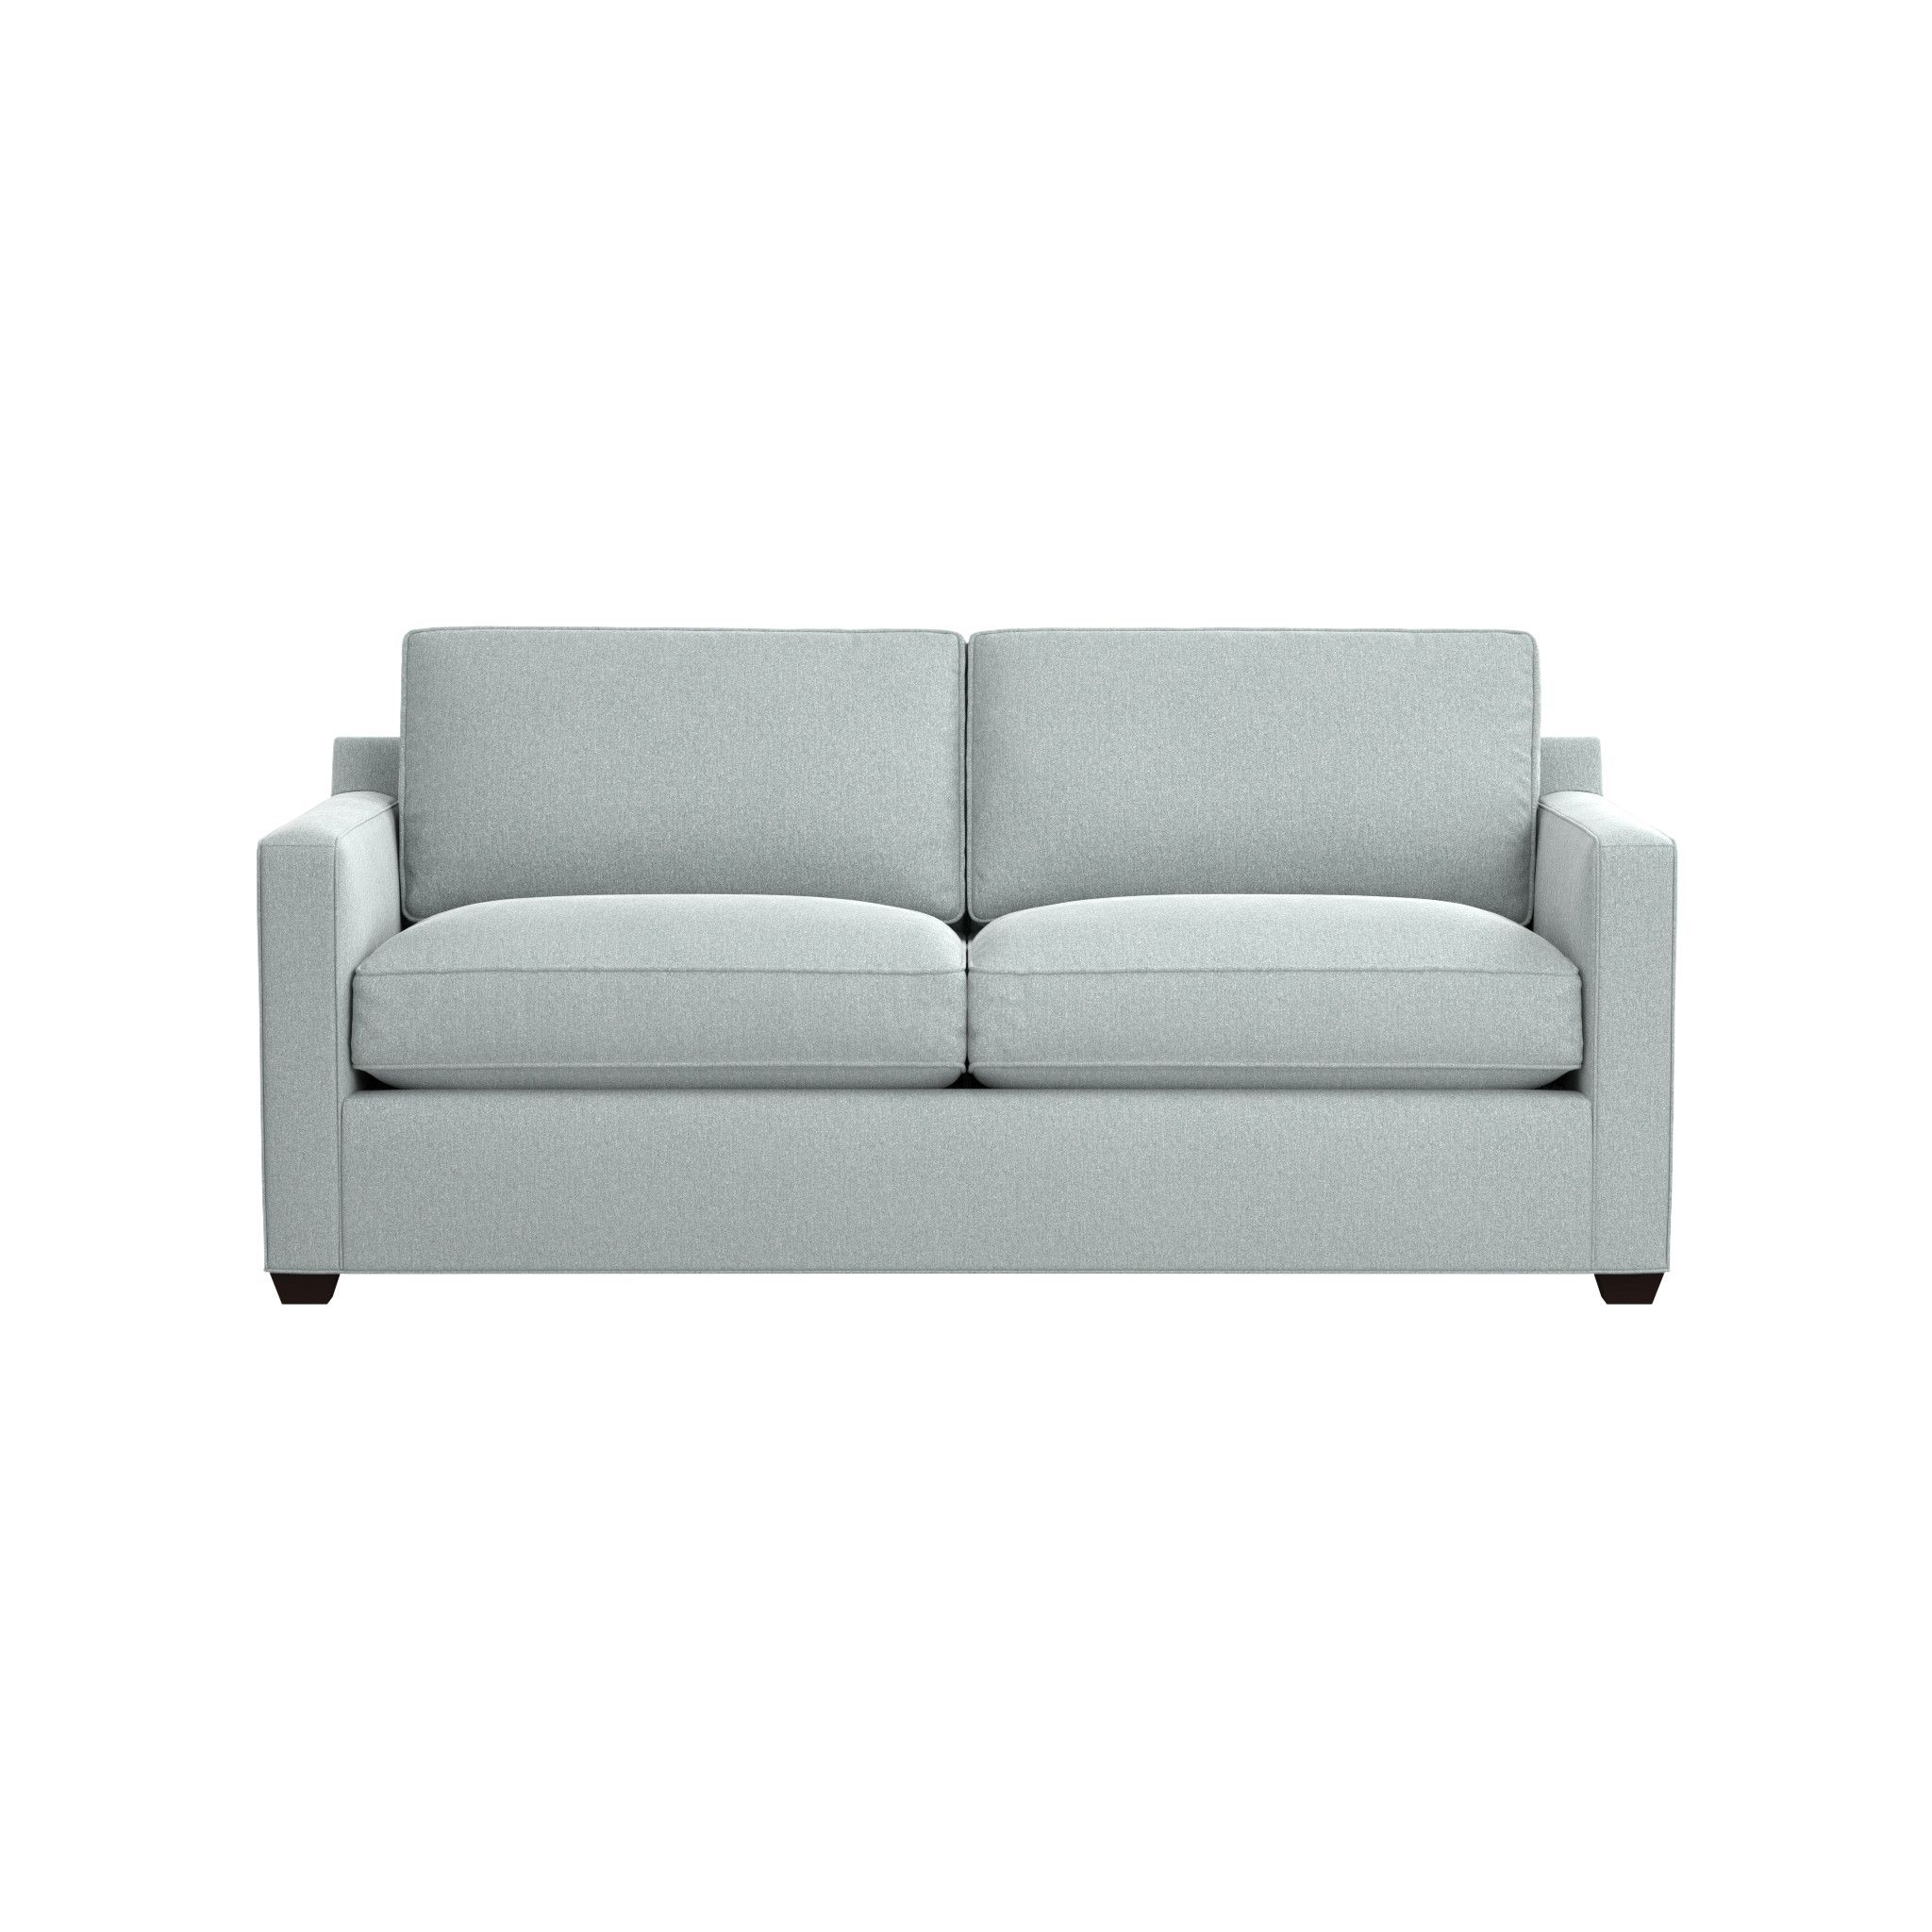 Prime Davis Queen Sleeper Sofa Apartment Decorating Sofa Cjindustries Chair Design For Home Cjindustriesco